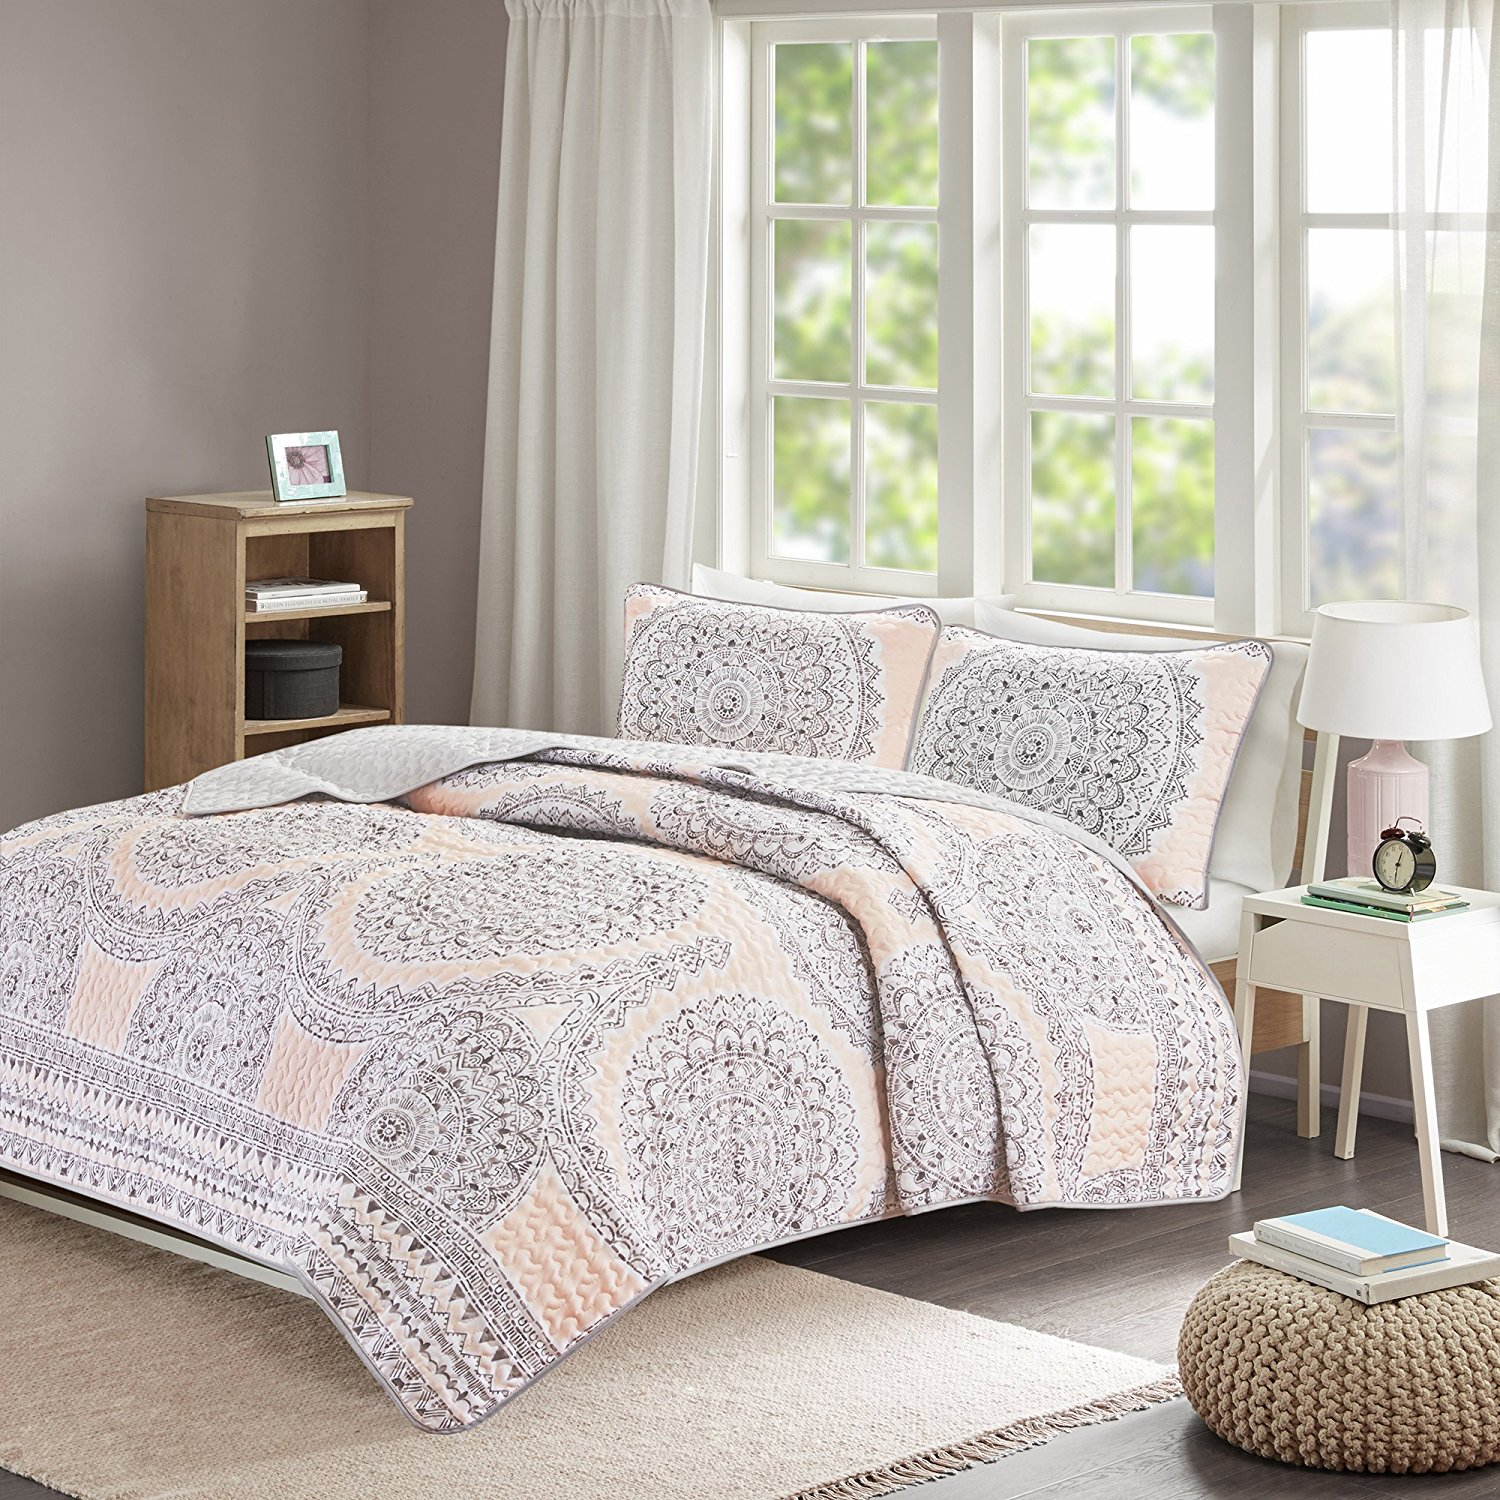 Girls Bedding Sets Twin & Twin Xl - Quilt/Coverlet Set - 2 Pieces - Blush/Pink/Grey - Printed Medallions - Lightweight Twin Size Bedding Sets For Girls - Bedspread Fits Twin & Twin Xl - Adele